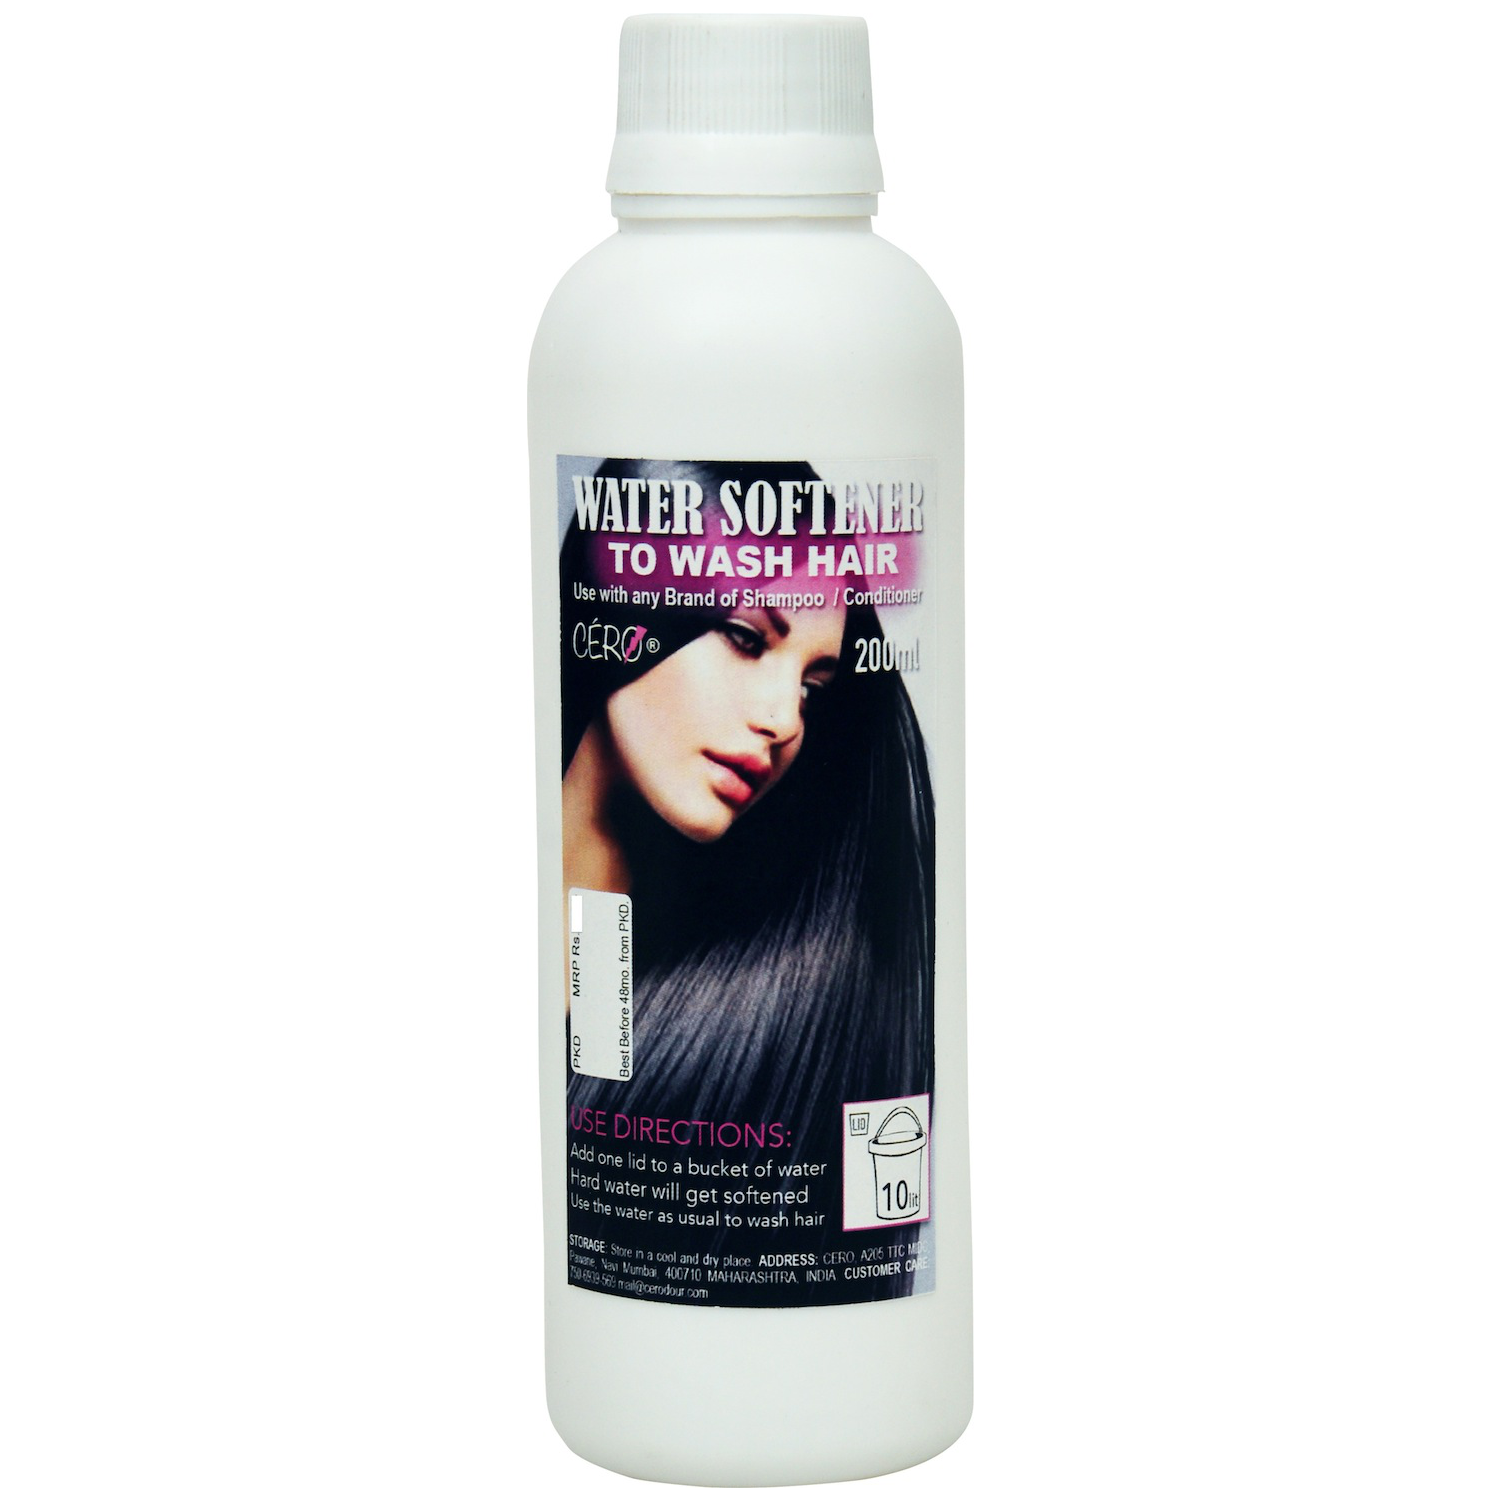 Cero Water Softener To Wash Hair Use With Any Brand Of Shampoo / Conditioner